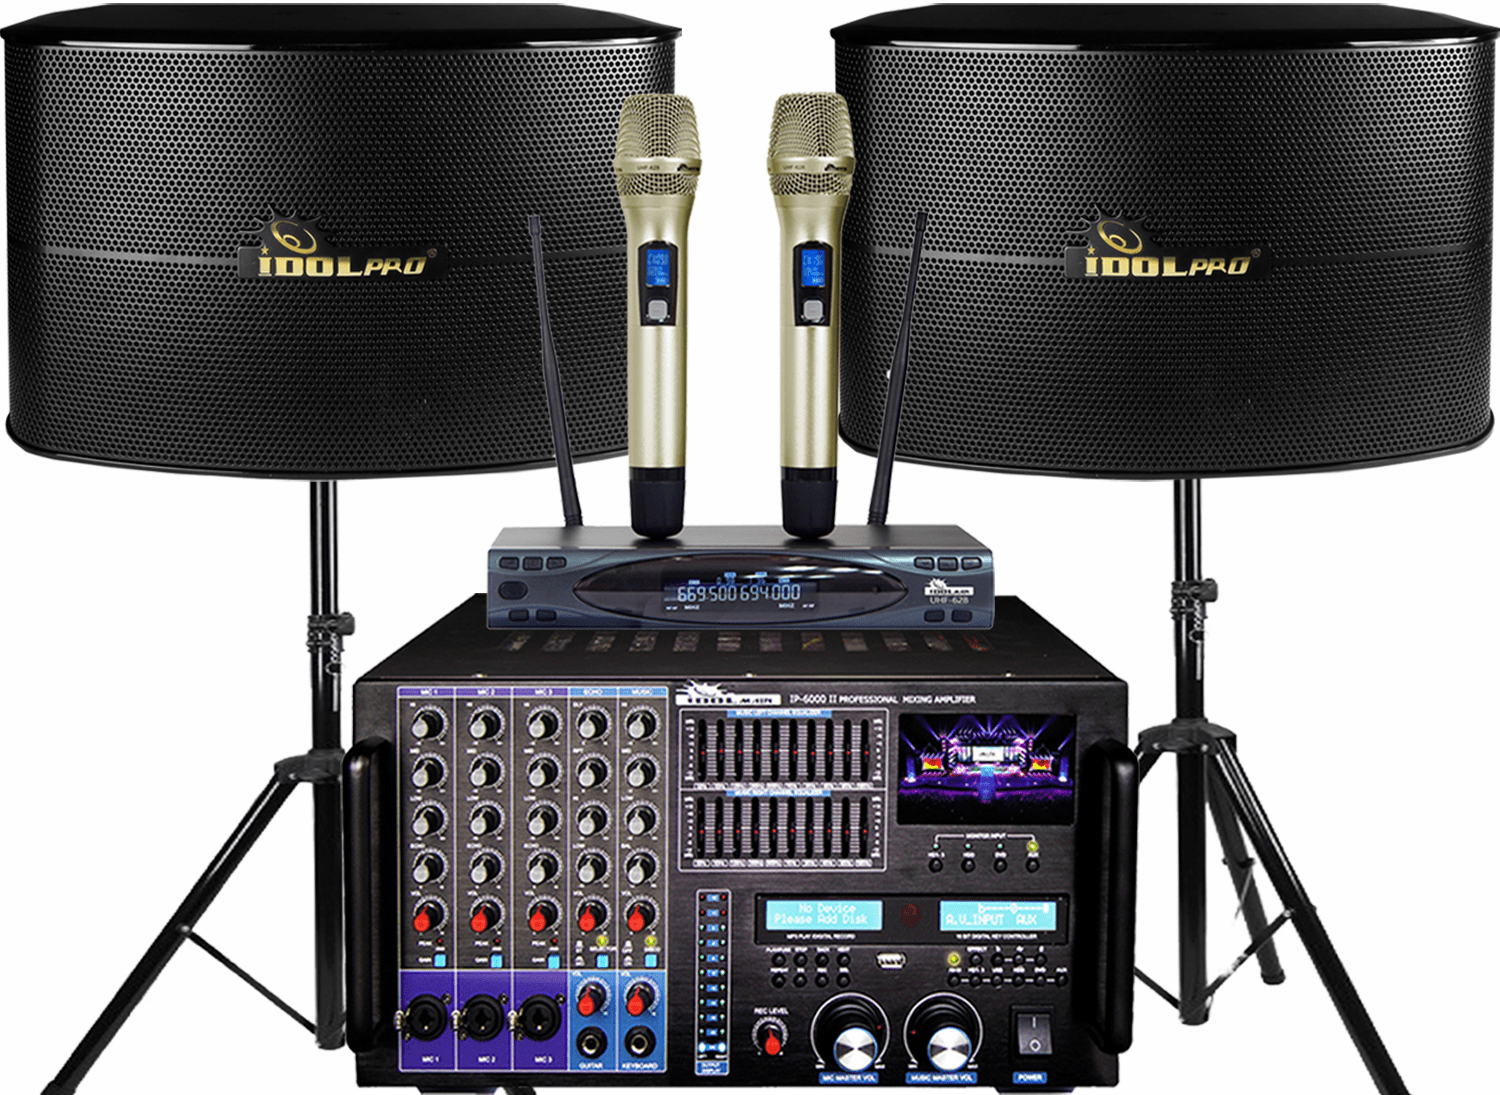 "<font color="" blue"">PACKAGE 2 </font> --IPS-13G Speakers & IP-6000 II Mixing Amplifier & UHF-628 Microphone"